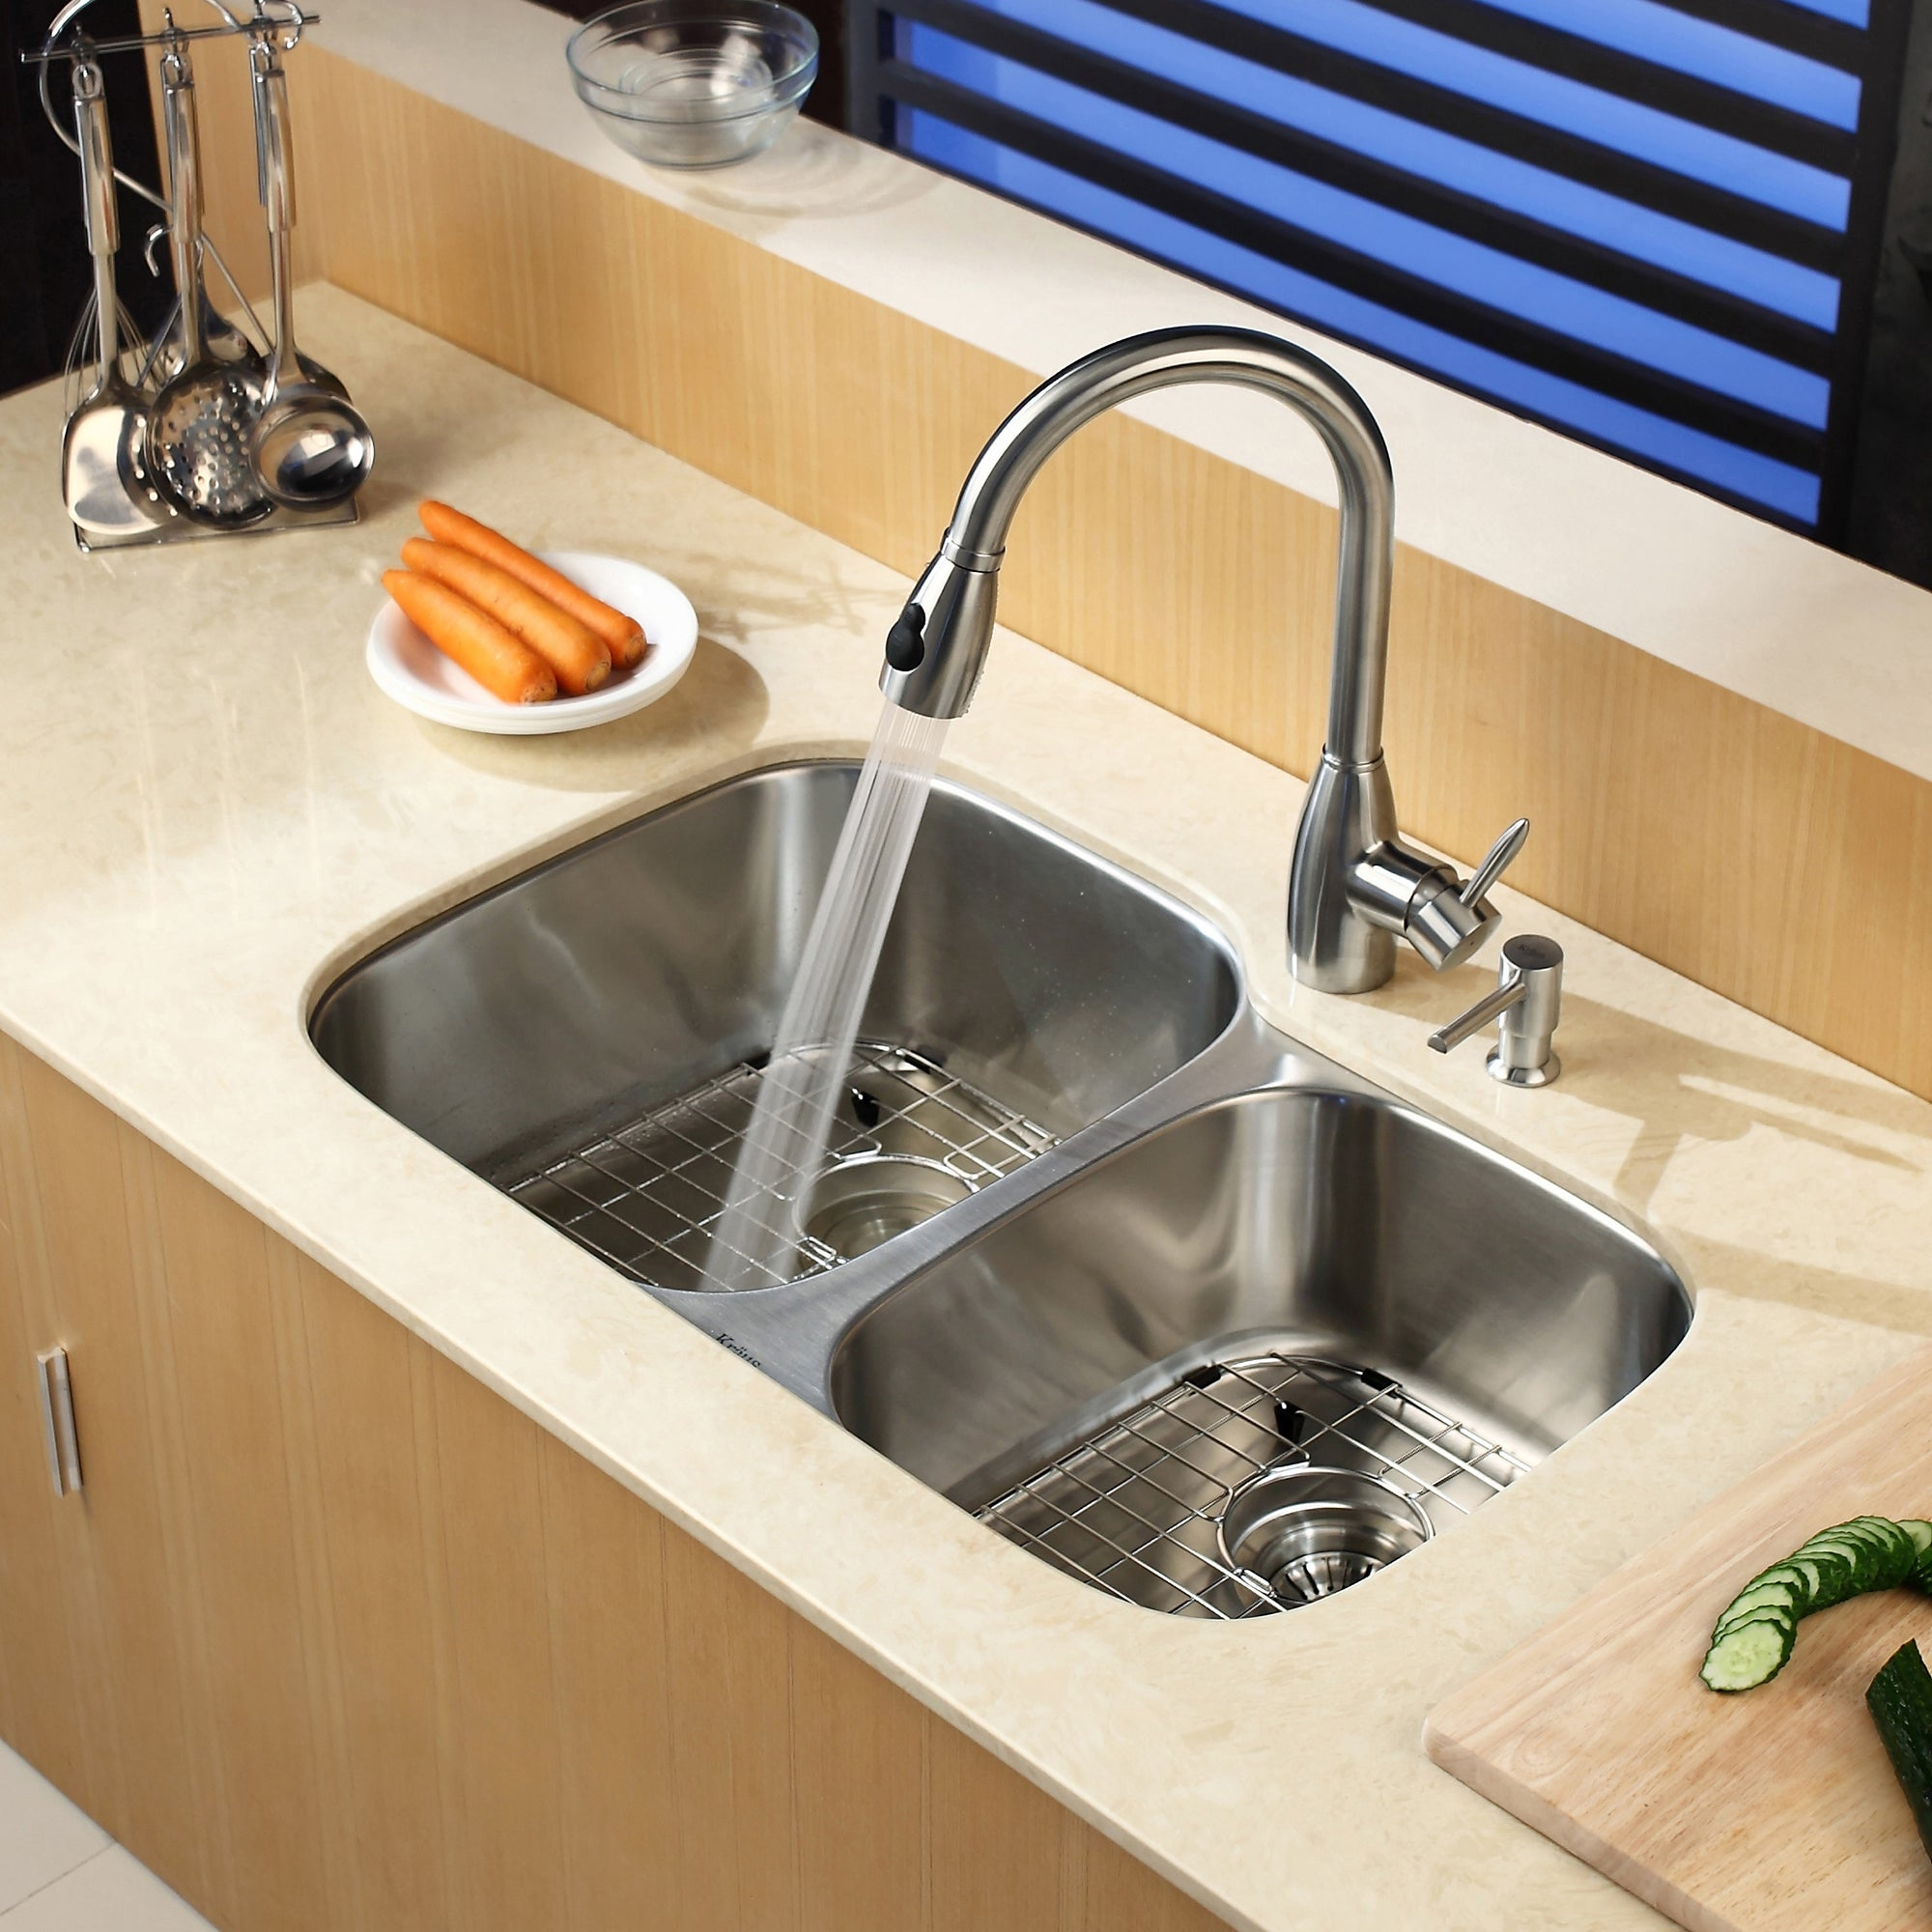 Porclain Kitchen Sinks Undermount on